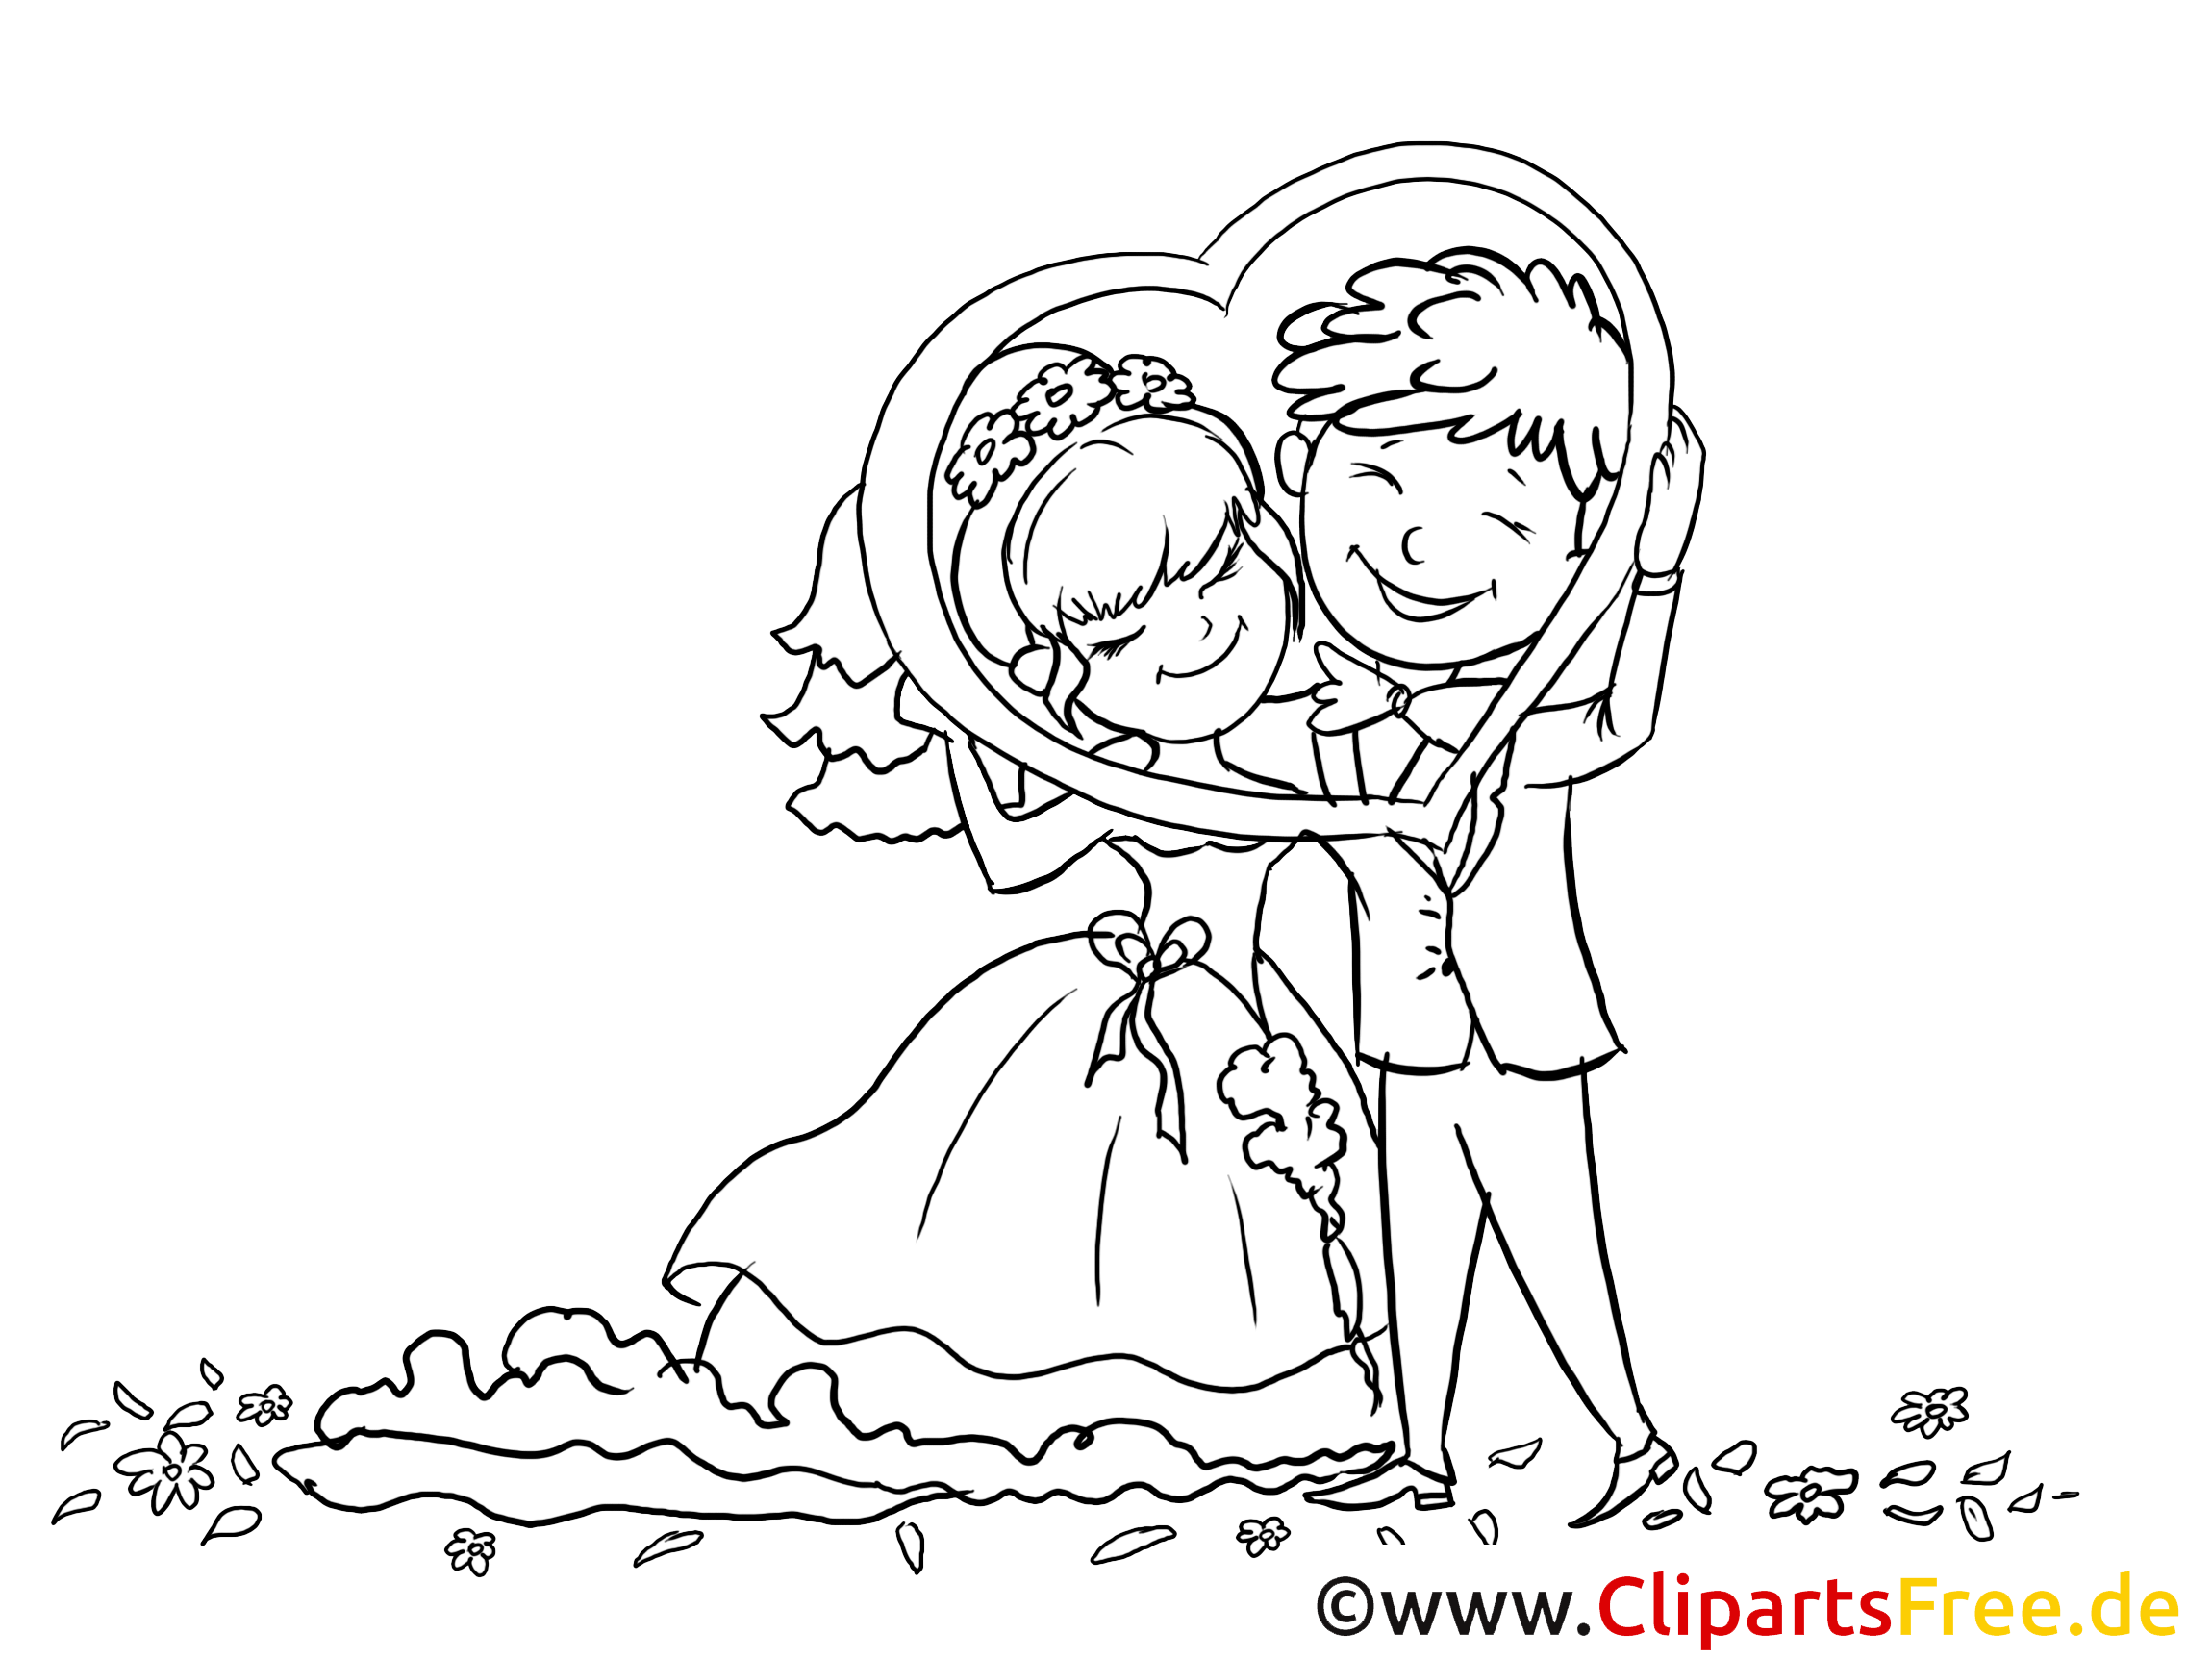 coloriage gratuite couple mariage illustration mariage dessin picture image graphic clip. Black Bedroom Furniture Sets. Home Design Ideas